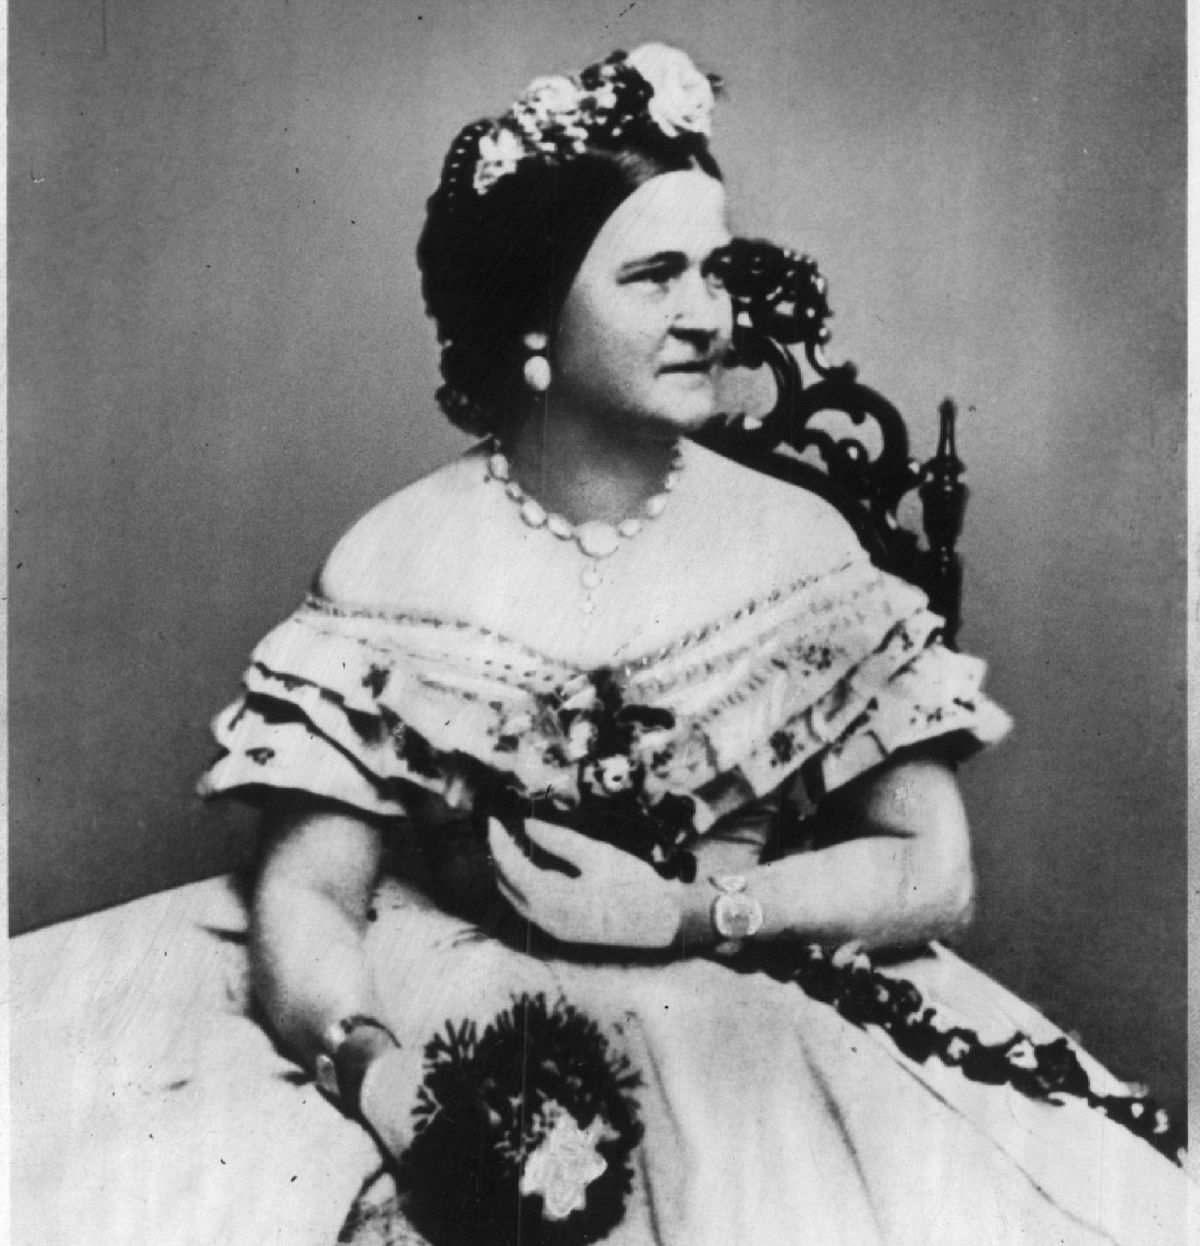 Mary Todd Lincoln, photographed in Washington, D.C. by Mathew Brady in January 1862